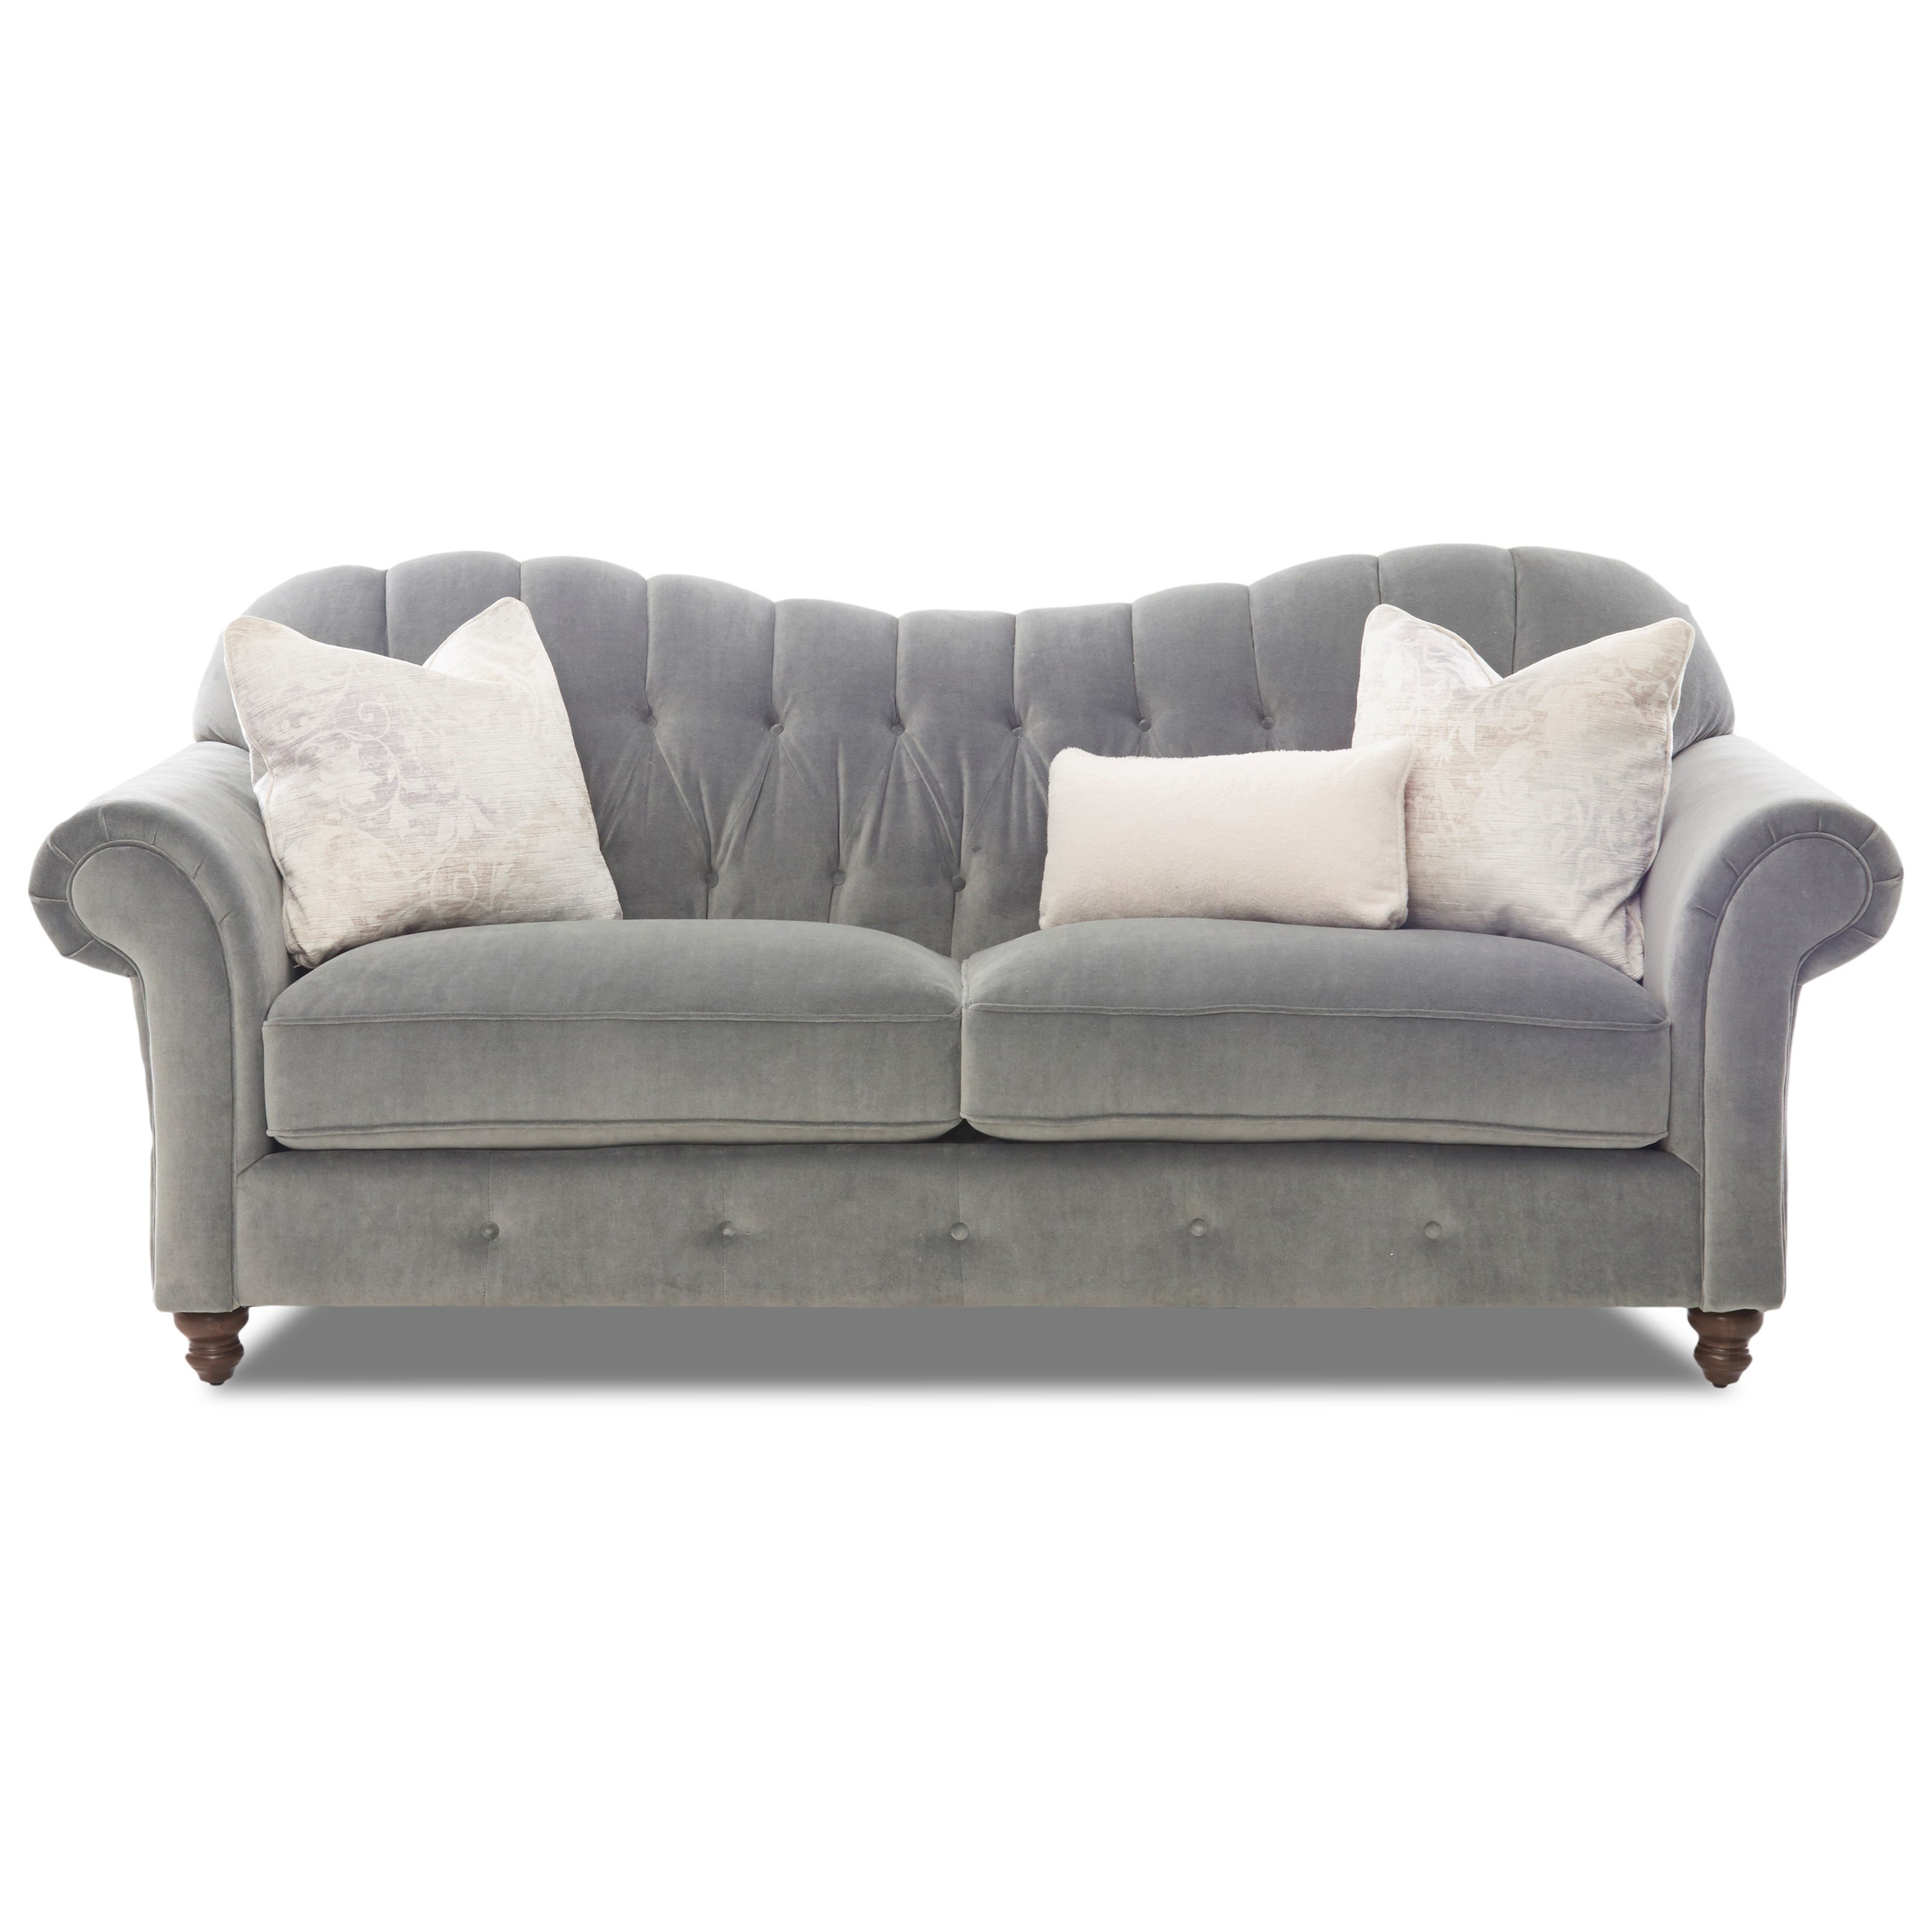 Shelby Sofa (no nails) by Klaussner at Northeast Factory Direct